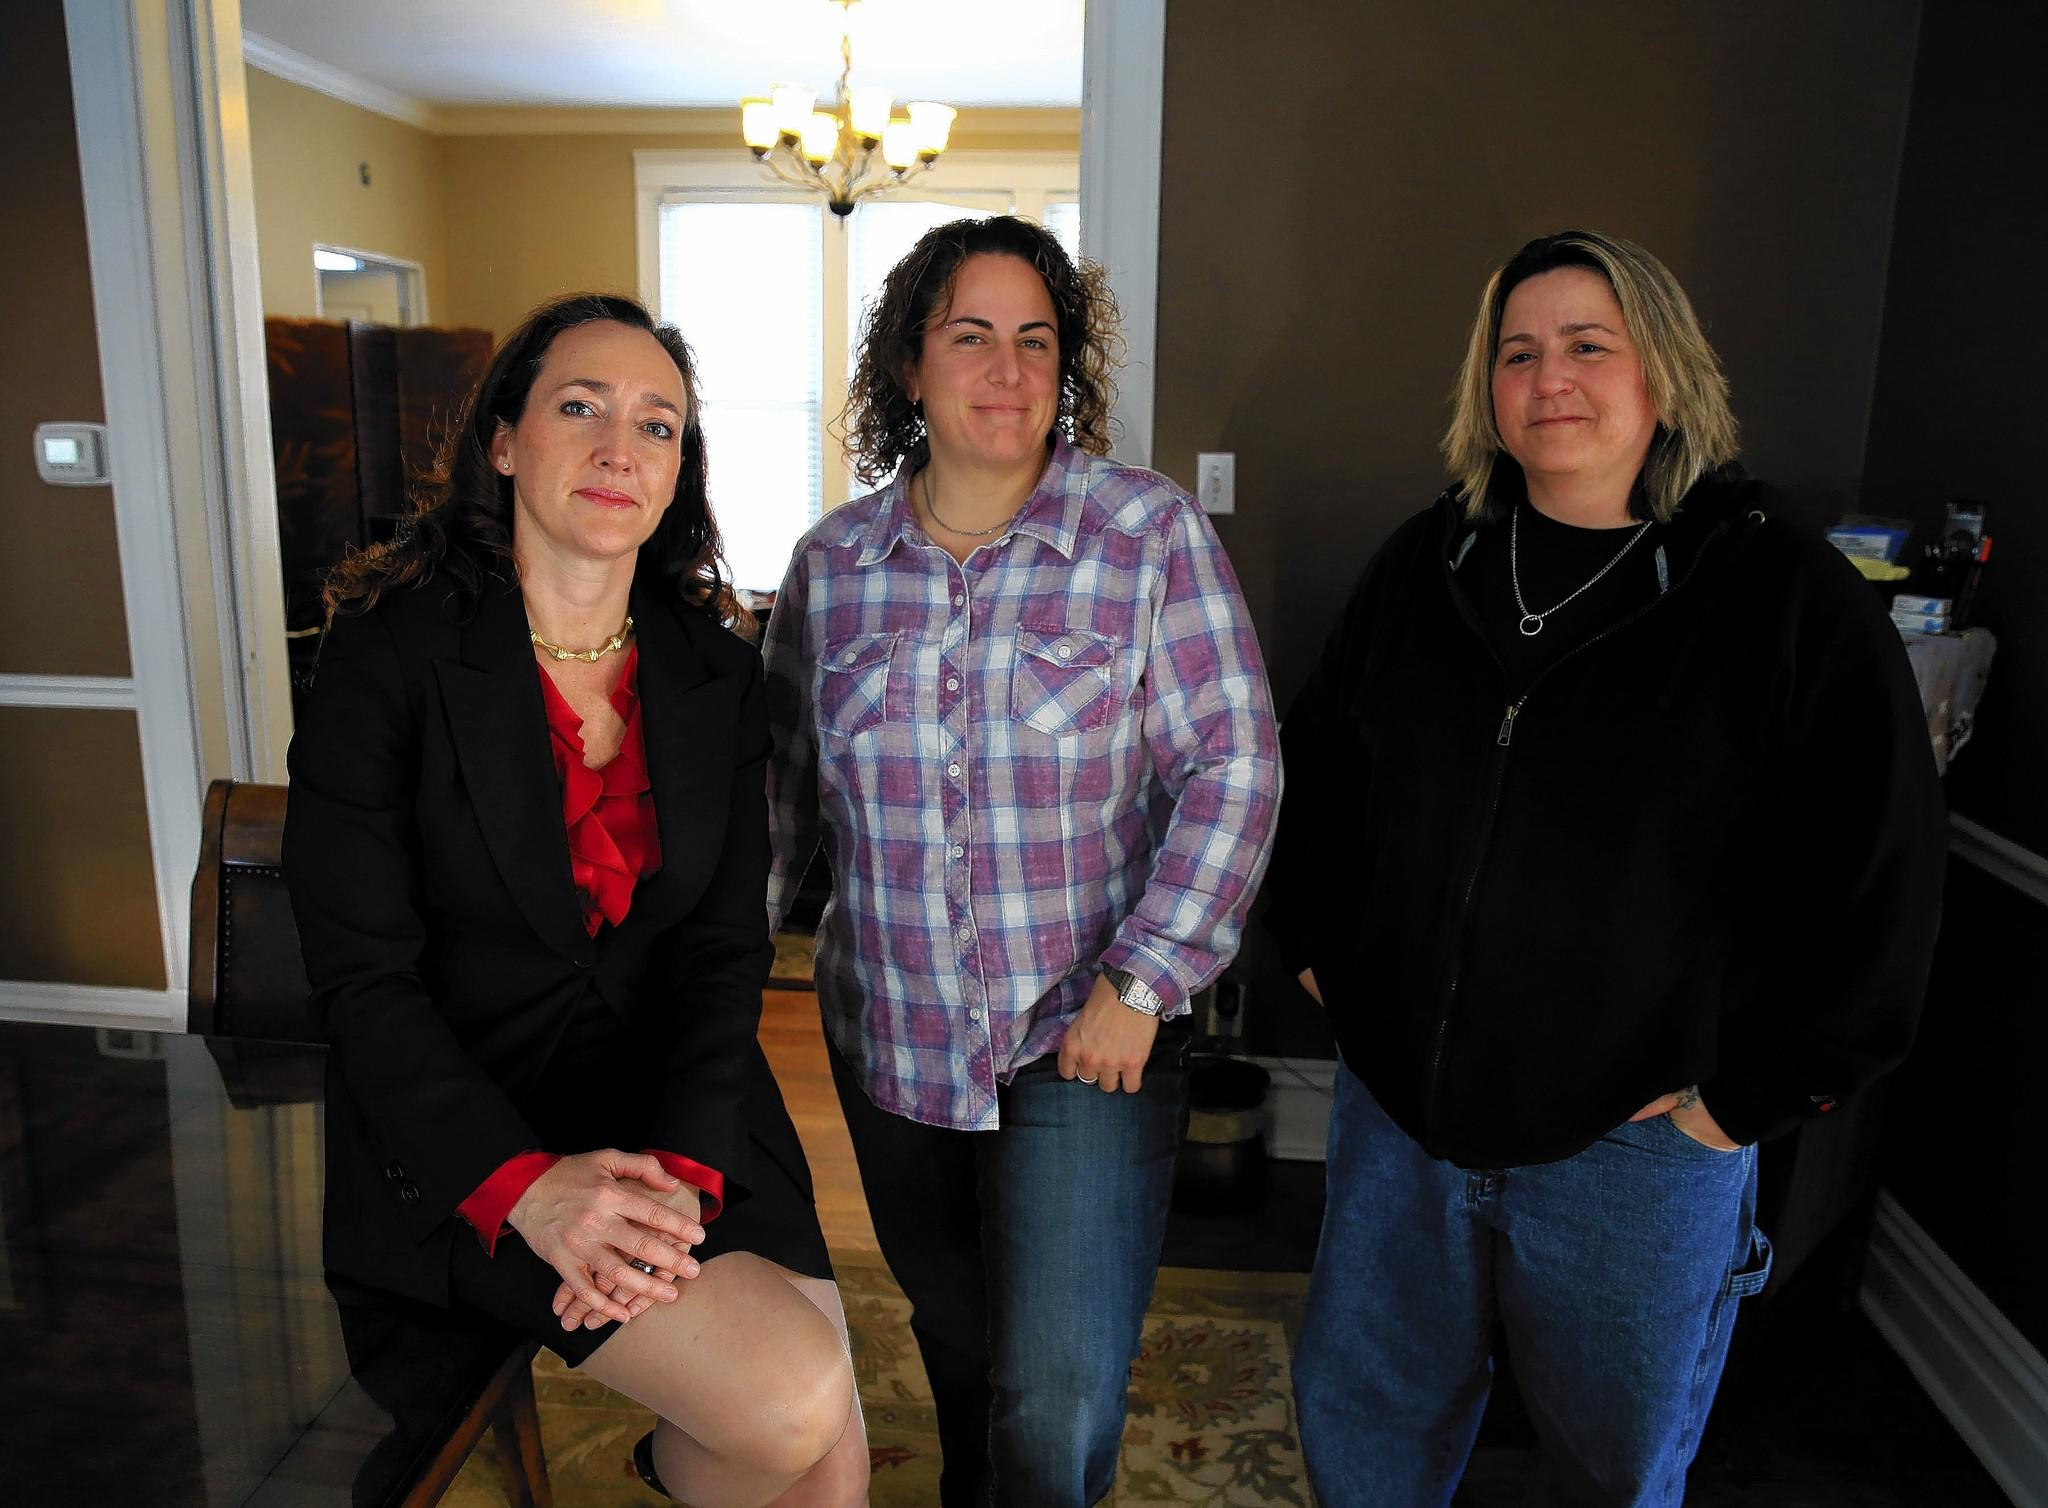 Attorney Dana Kurtz, from left, with two of her clients Debra Sciortino and Kelly Fuery. Sciortino, Fuery and Nicole Tomaskovic are suing Chicago over an alleged road rage incident involving a police officer.